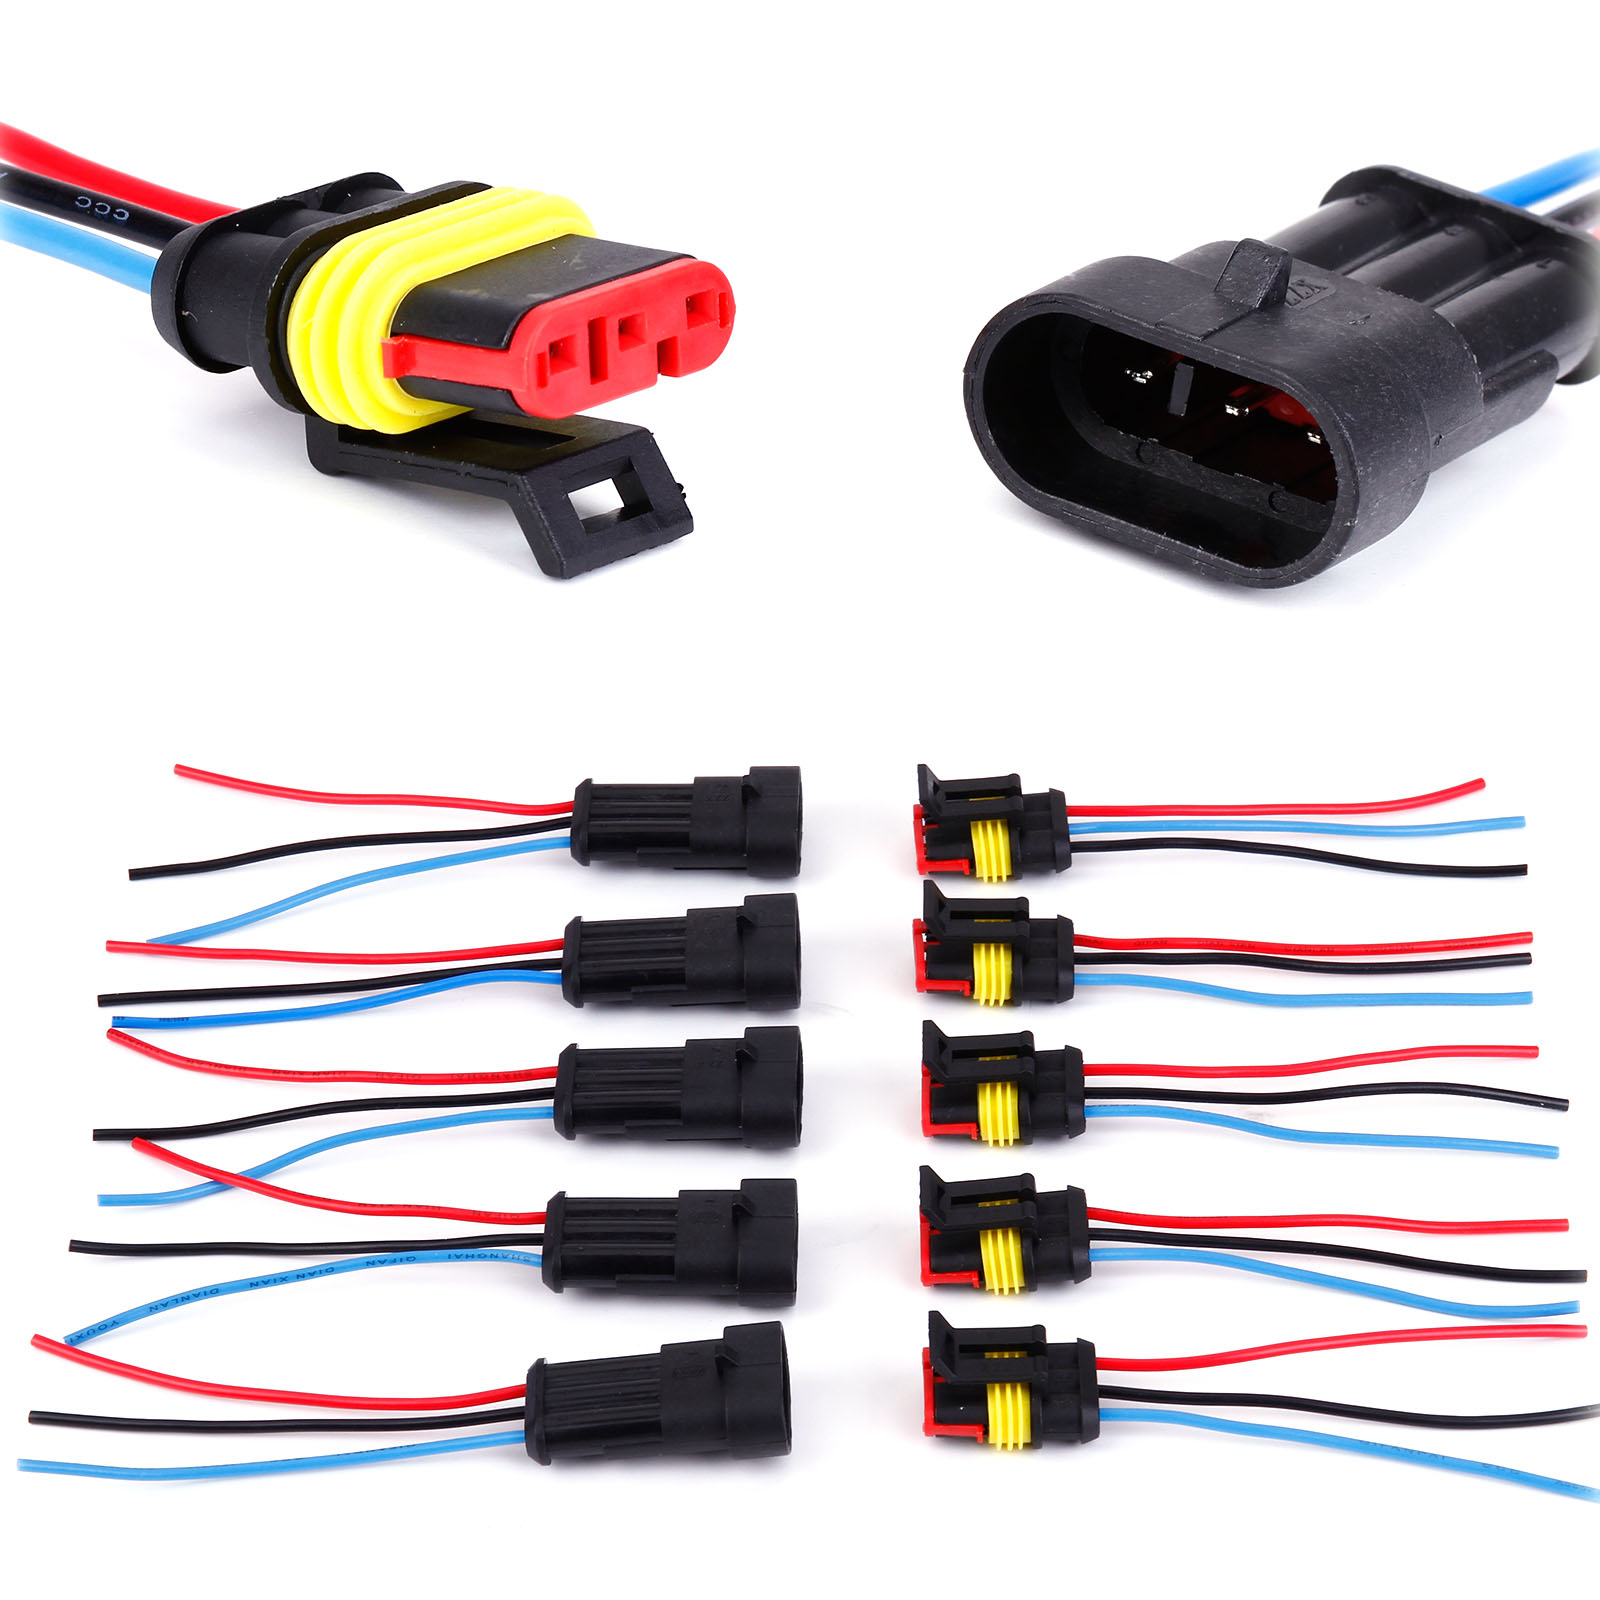 5x 3 Pin Way Waterproof Electrical Connector Plug With Wire Car Motorcycle Wiring Connectors Uk